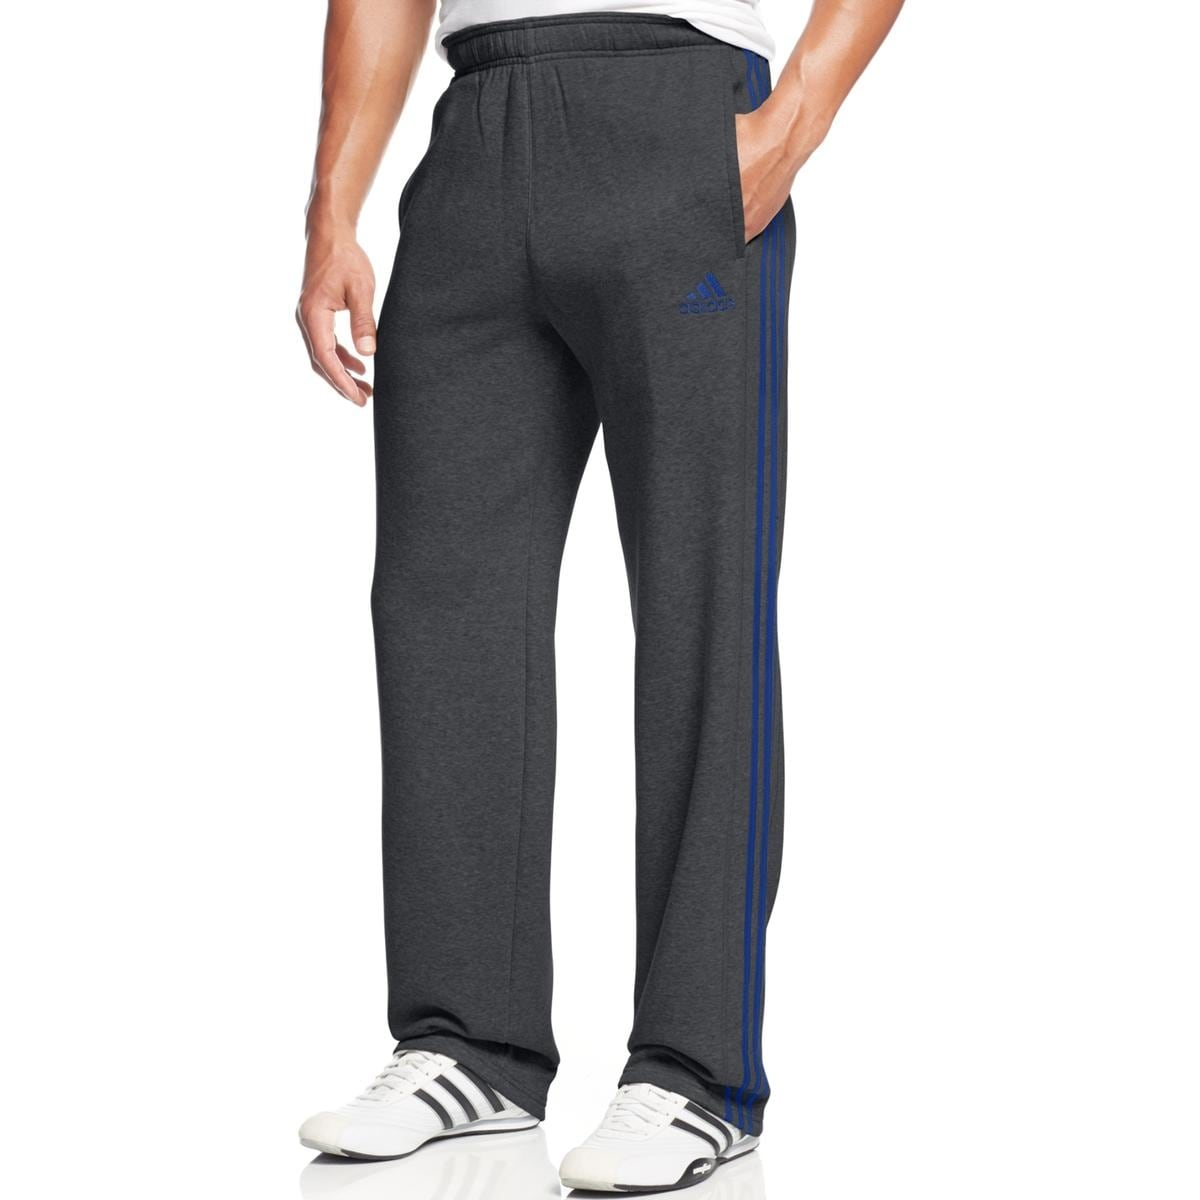 d250e5e19 Shop Adidas Mens Big & Tall Sweatpants Fleece Training - 2Xl - Free  Shipping On Orders Over $45 - Overstock - 20751049